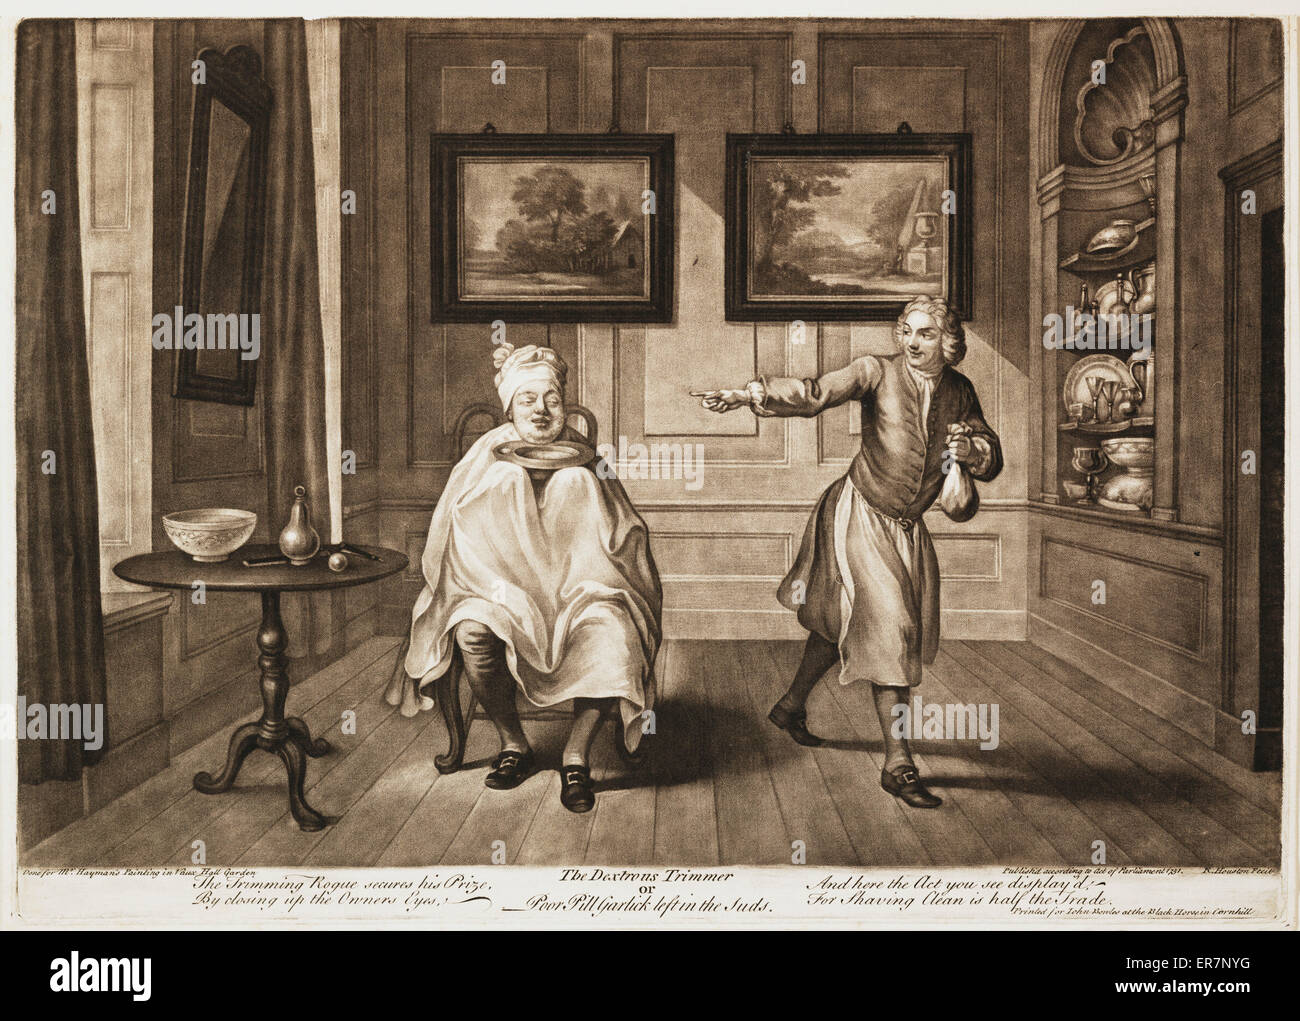 The dextrous trimmer or Pool Pill Garlick left in the suds. Date 1751. - Stock Image